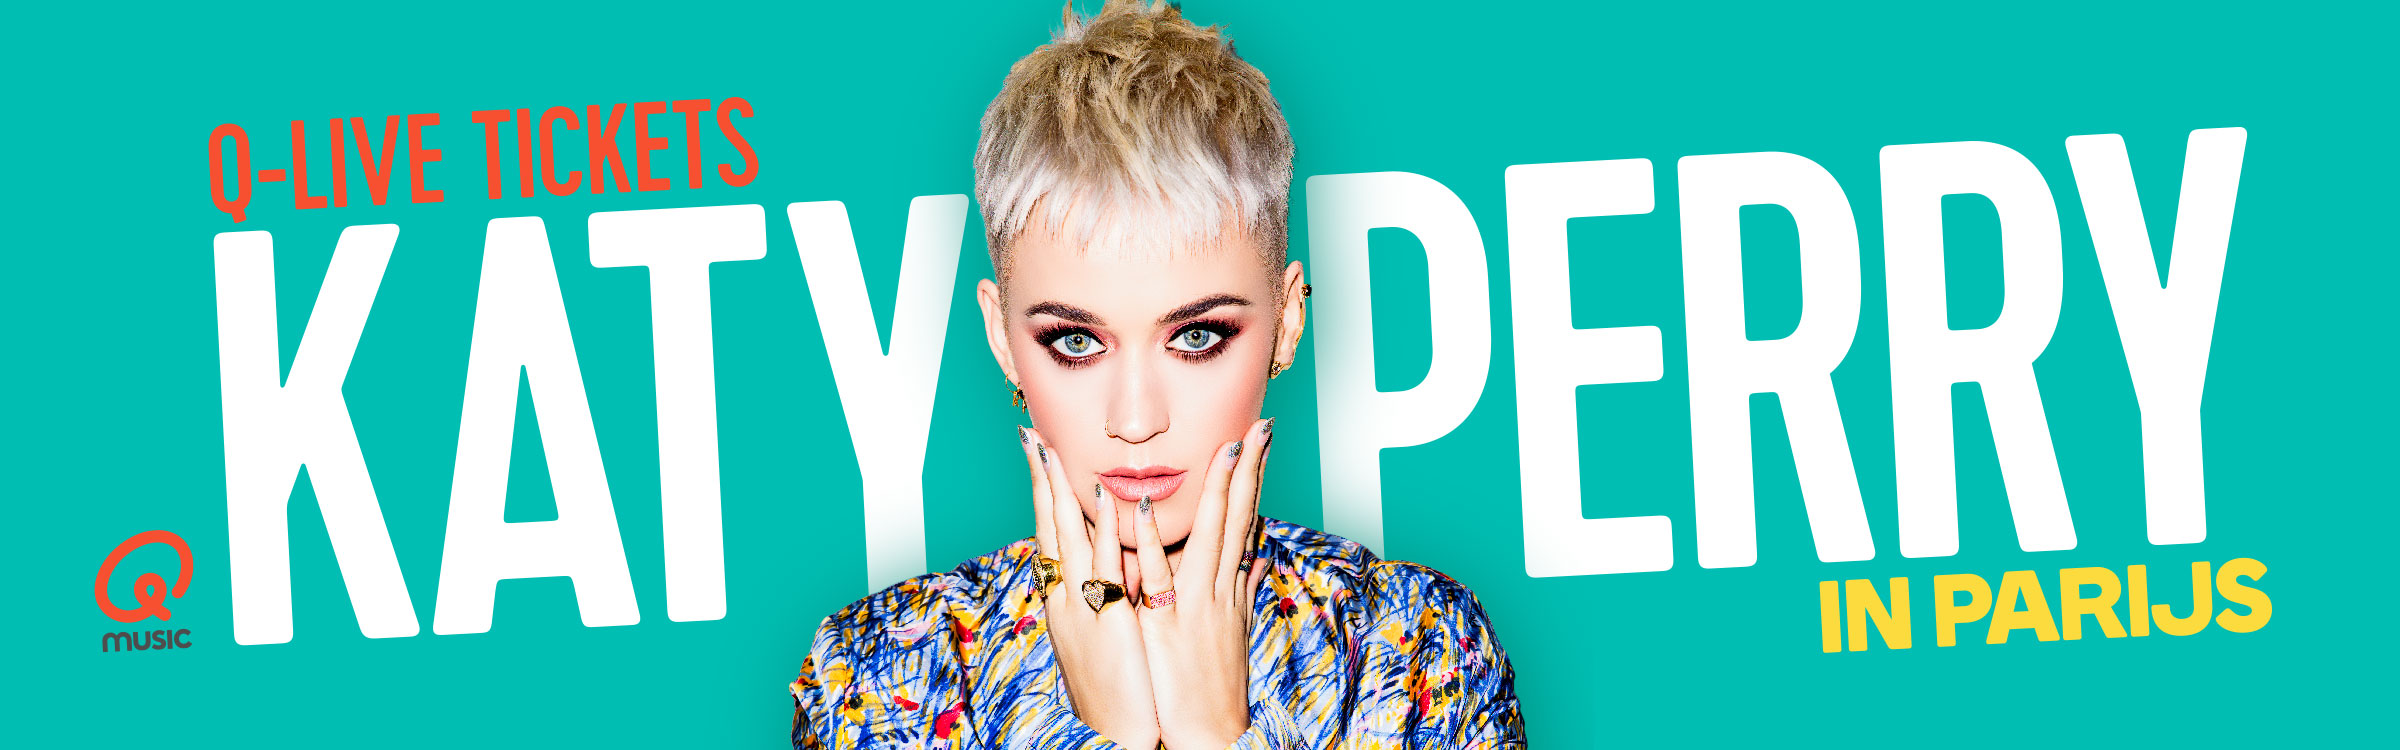 Qmusic actionheader katyperry